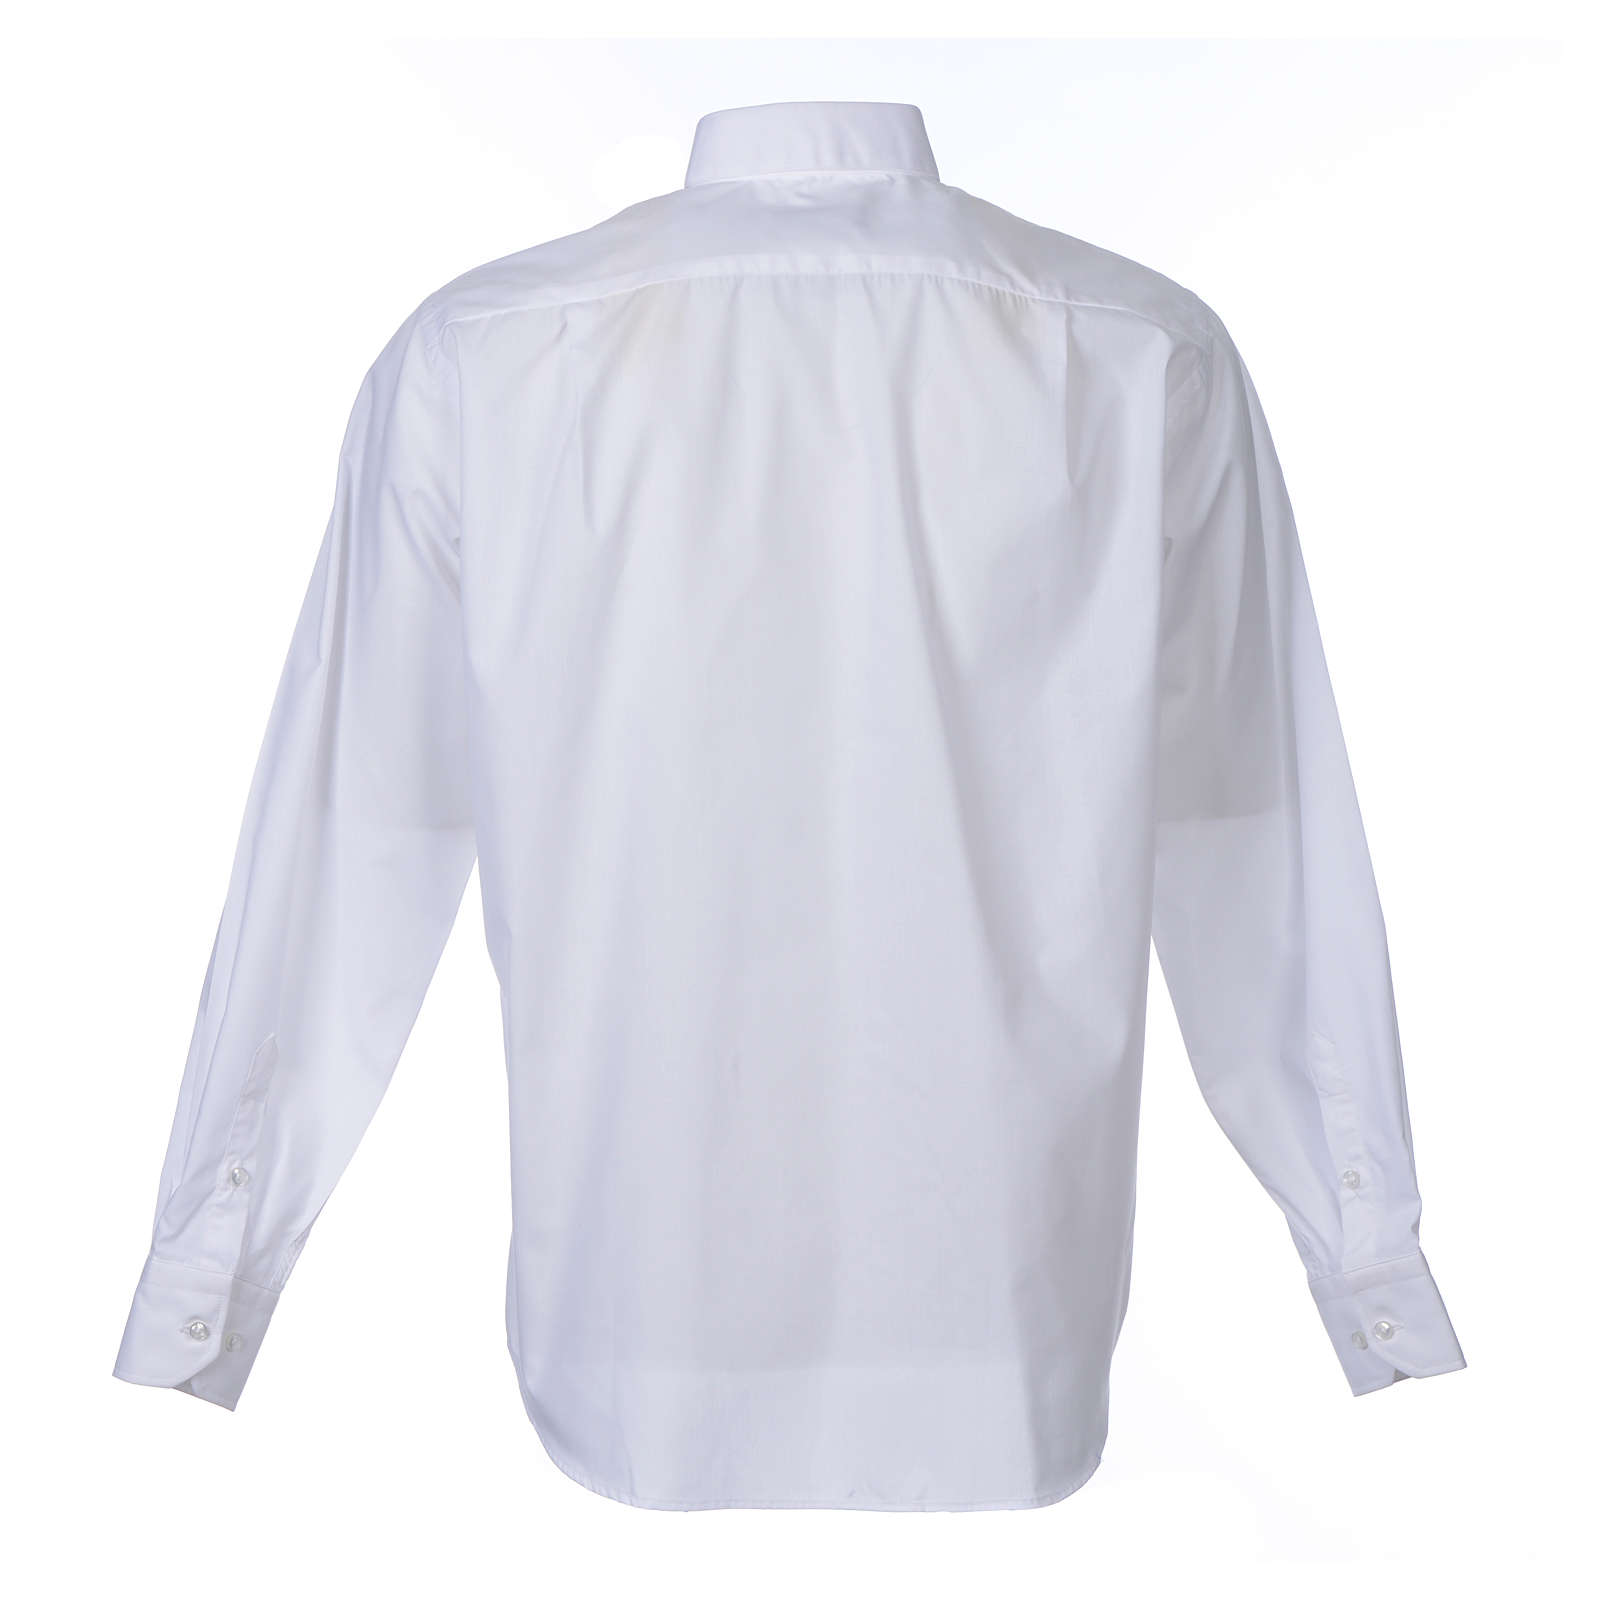 Clergy shirt long sleeves solid colour mixed cotton White 4